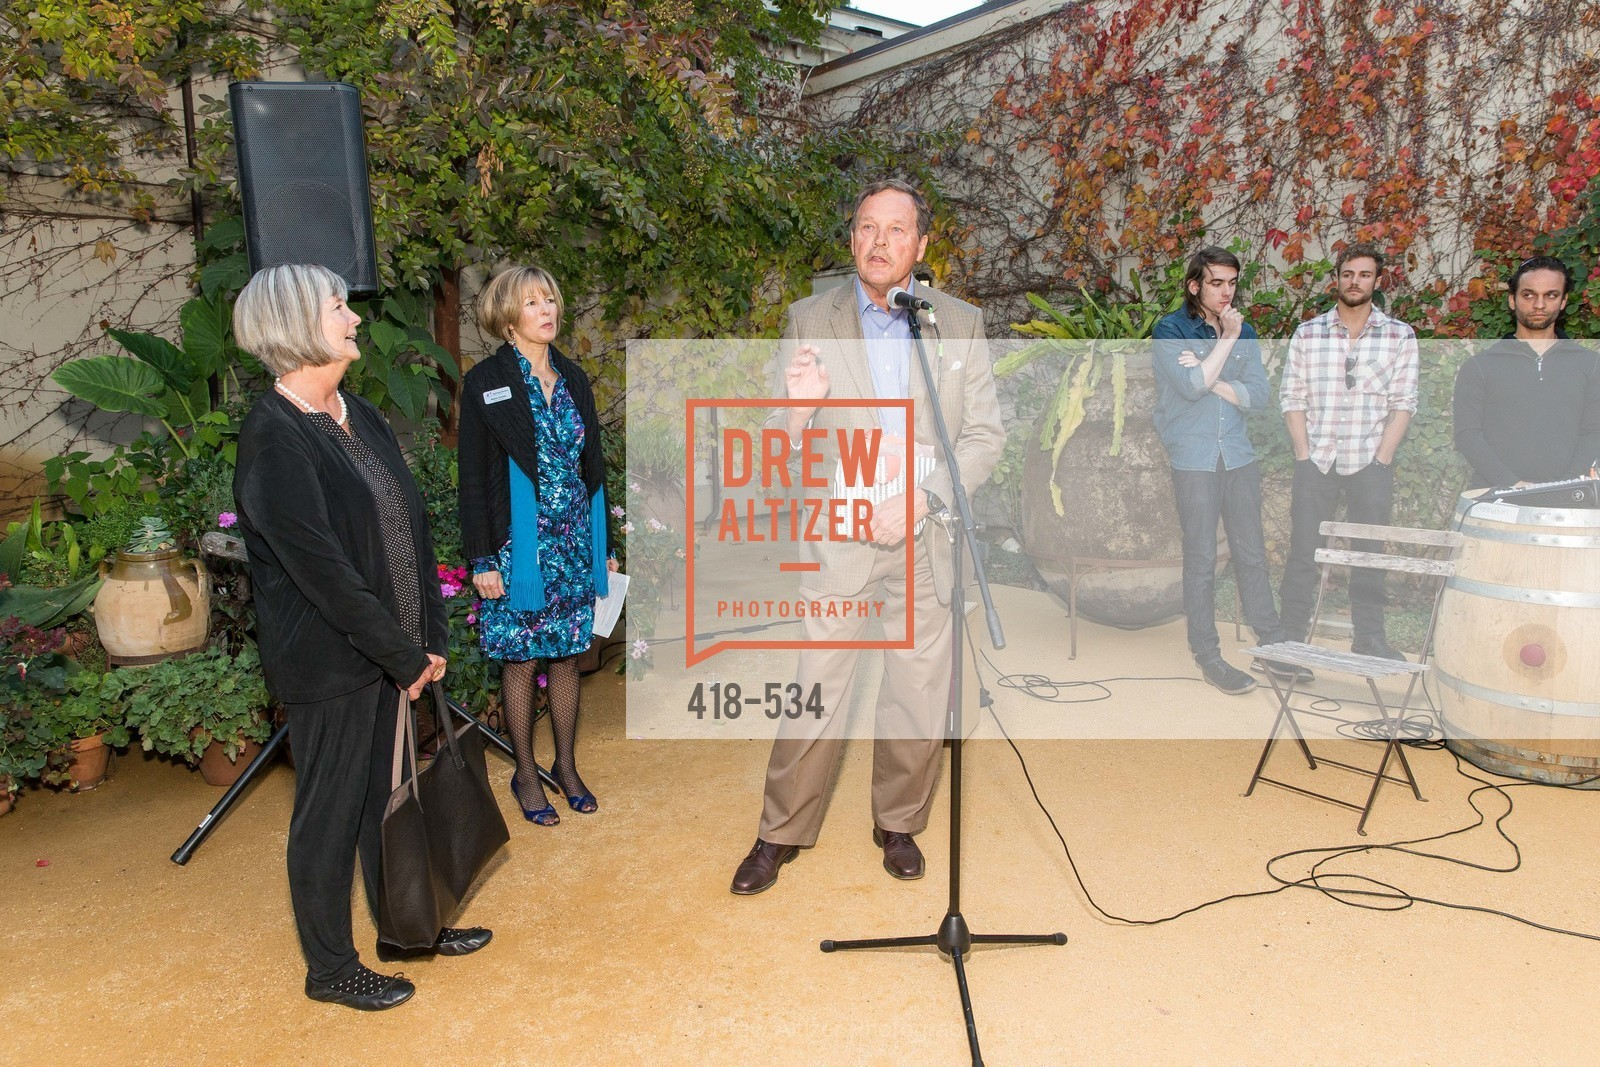 Millie Barrett, Anne Coyne, John Barrett, Perfecting Pairings - Food, Wine and Stories, Chateau St Jean, Kenwood, November 14th, 2015,Drew Altizer, Drew Altizer Photography, full-service agency, private events, San Francisco photographer, photographer california